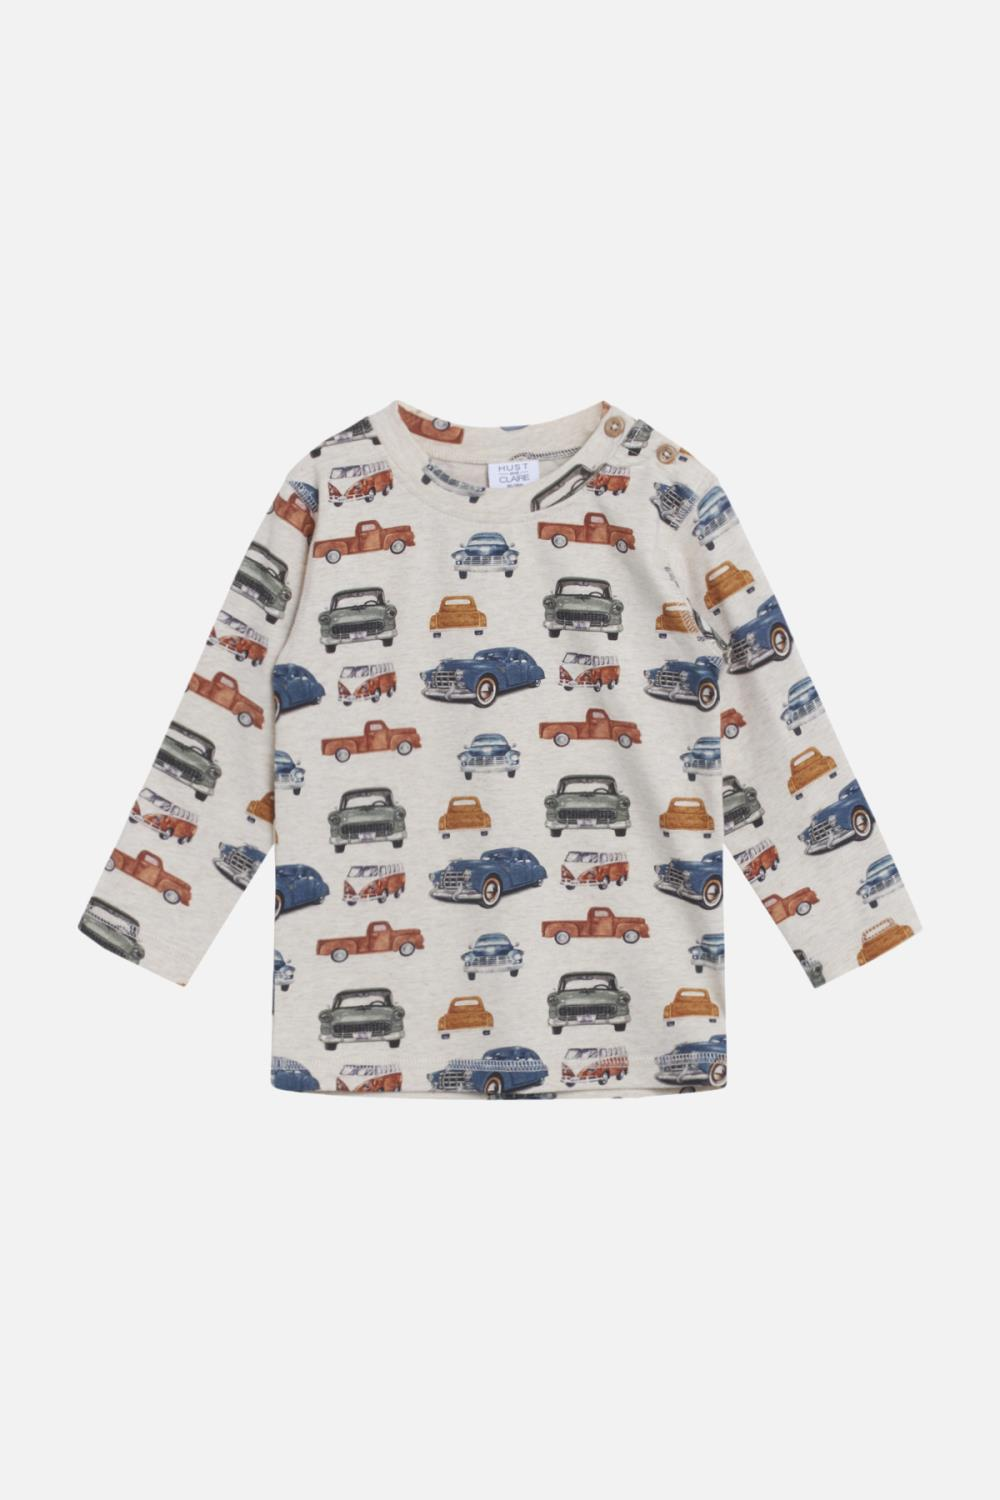 Hust and Claire - Anton - T-shirt l/s, Wheat